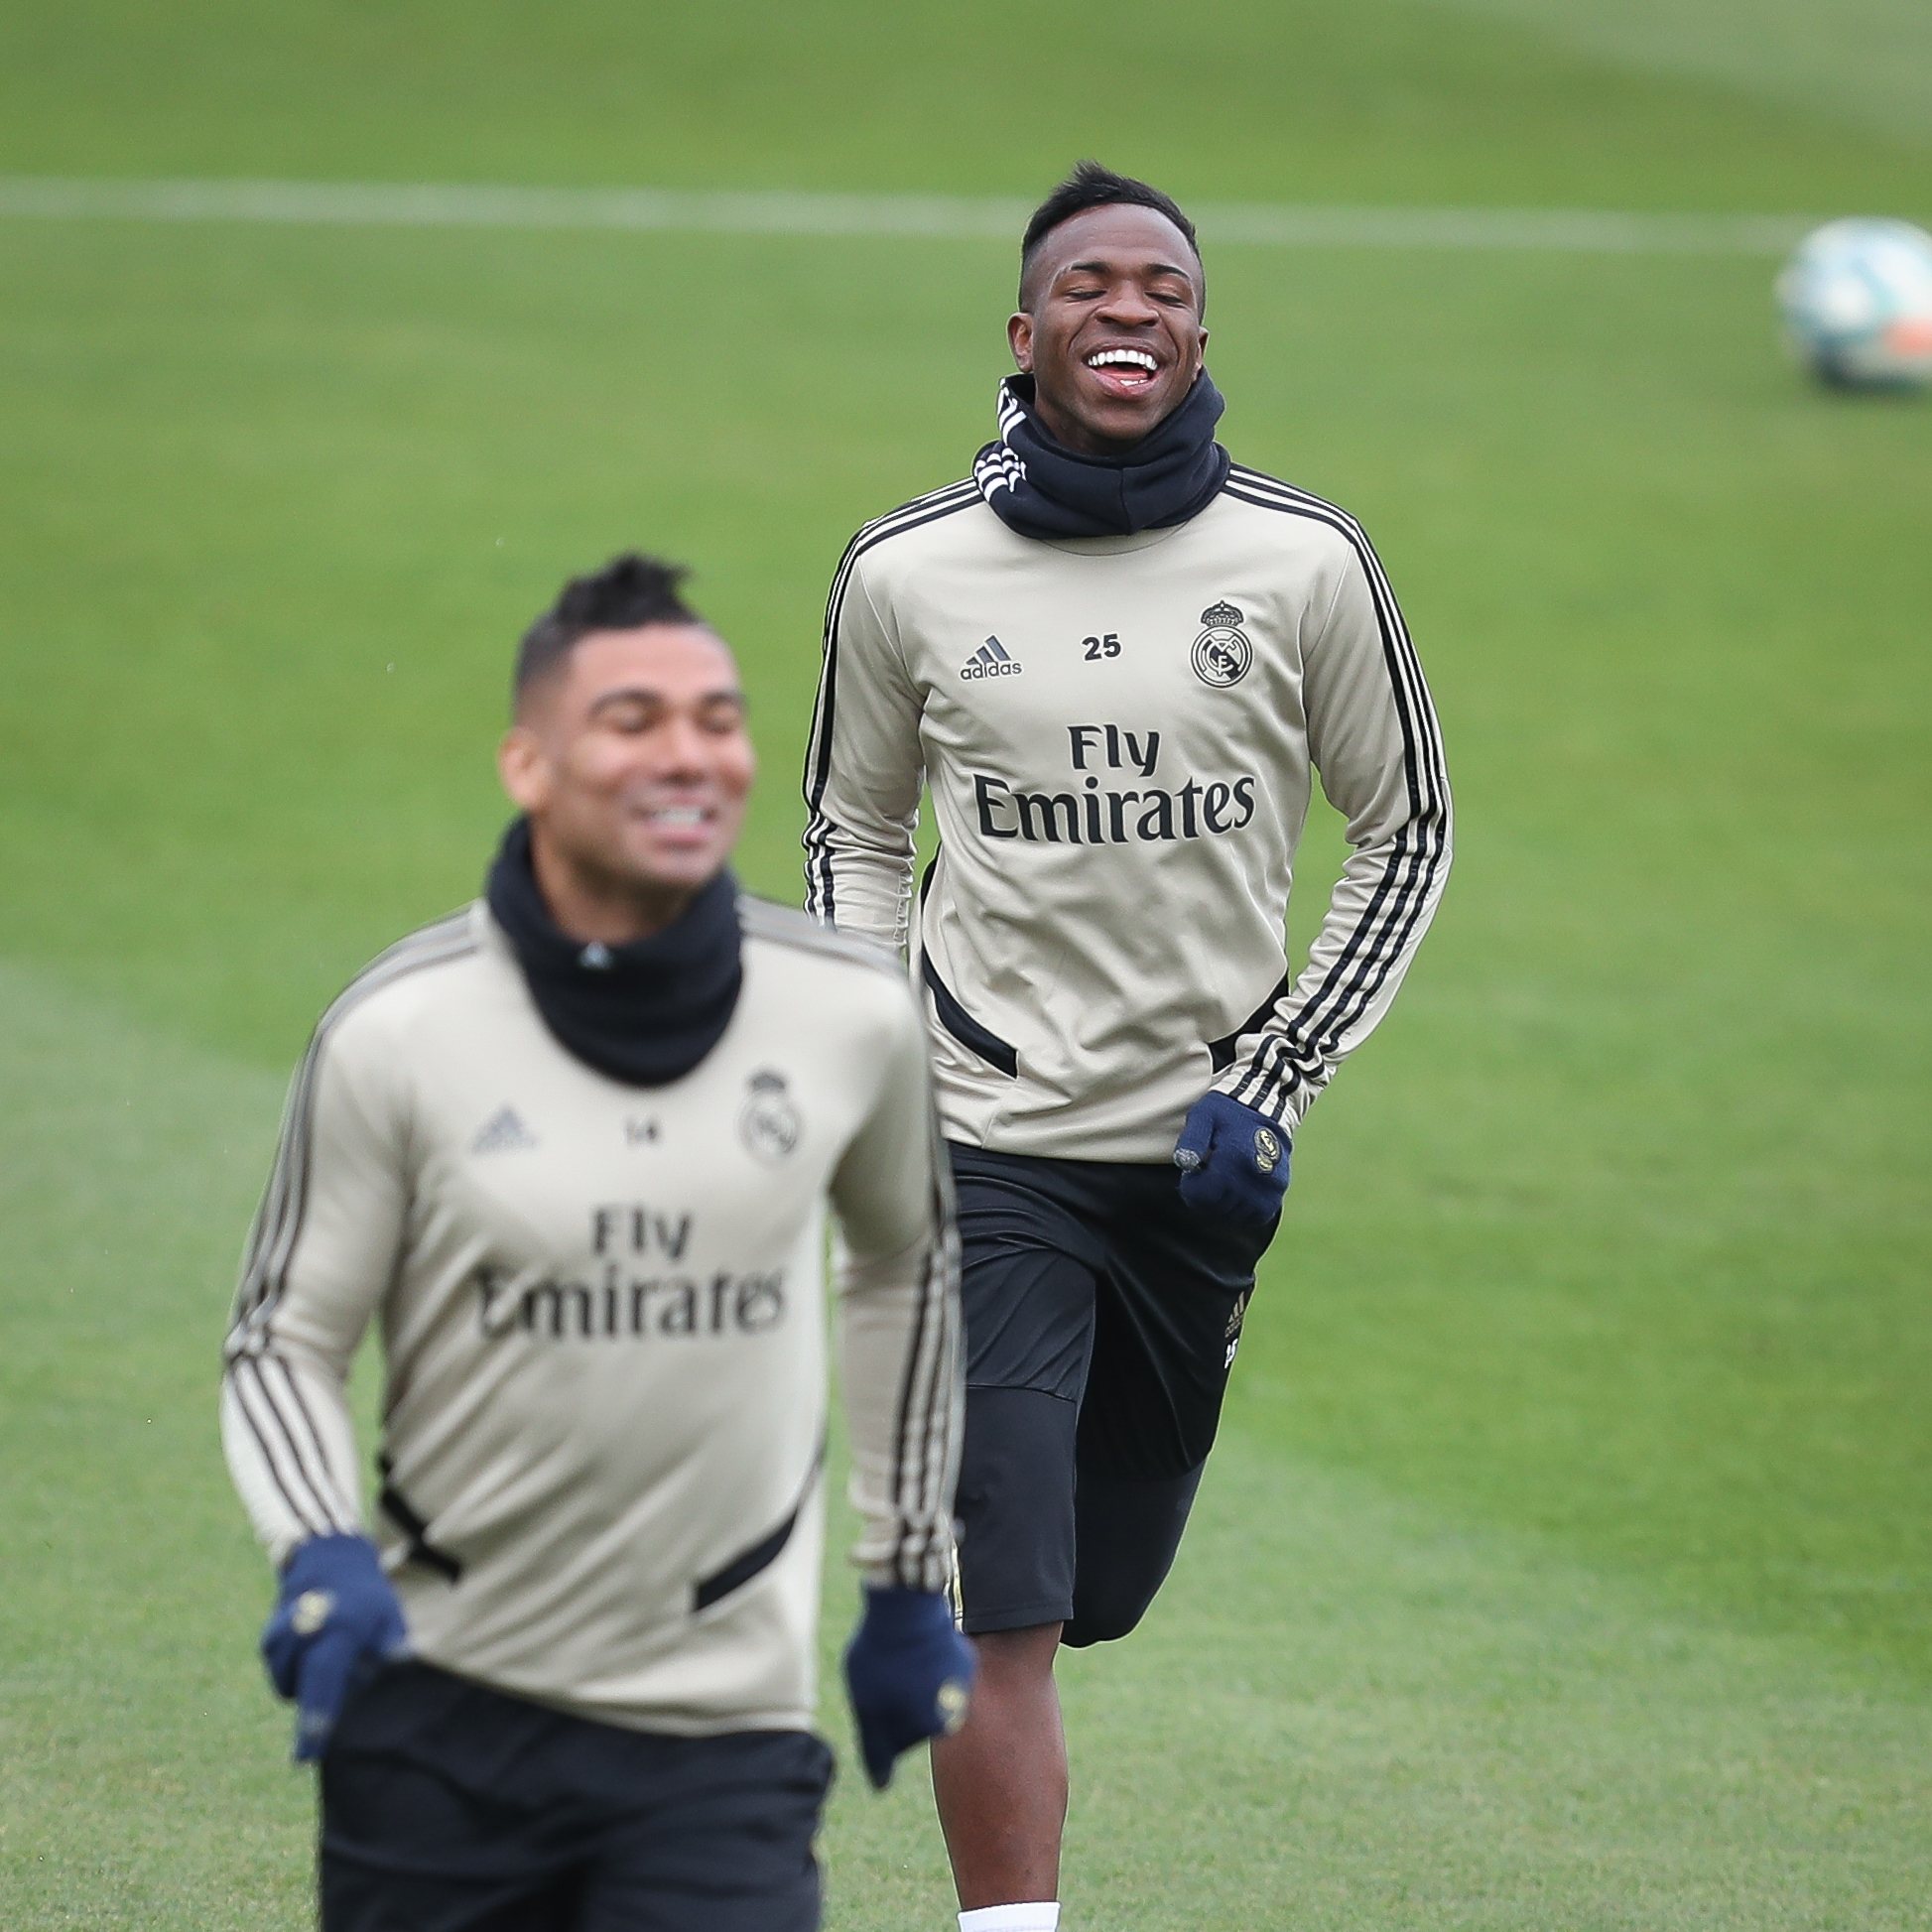 Real Madrid's Training Session On The Eve Of The Spanish 'Clasico'